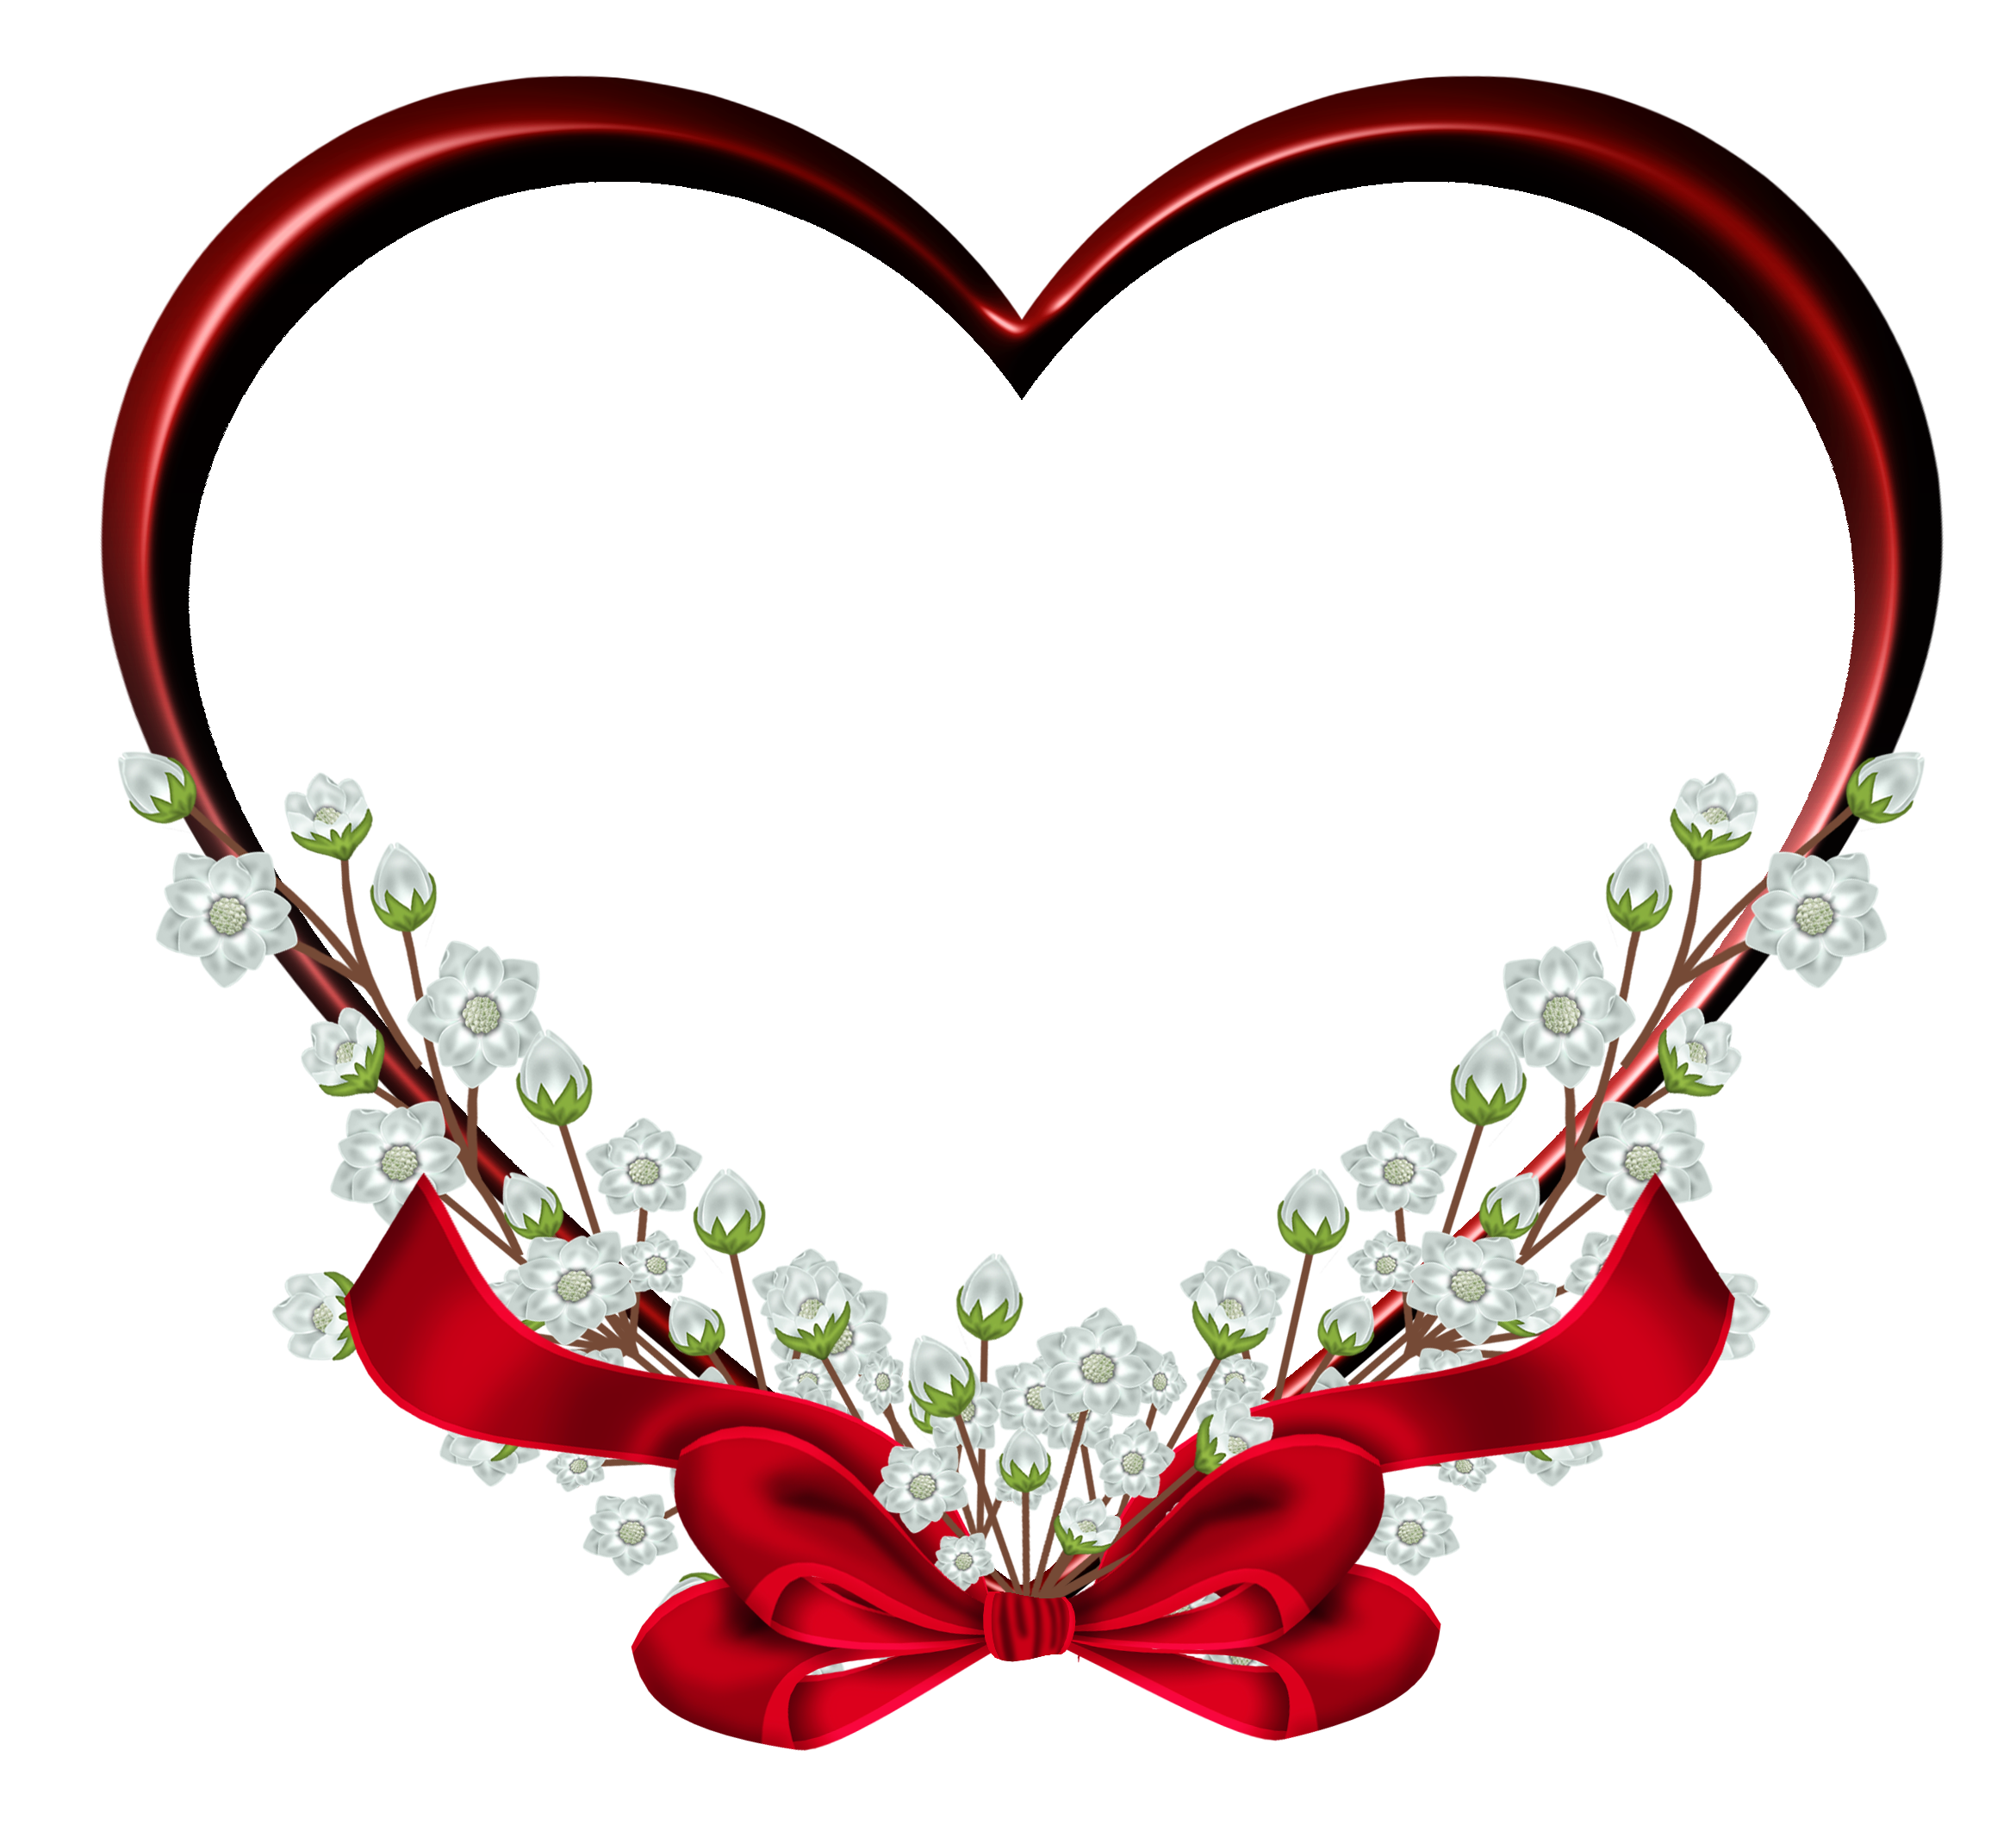 Wedding hearts png. Transparent red heart frame